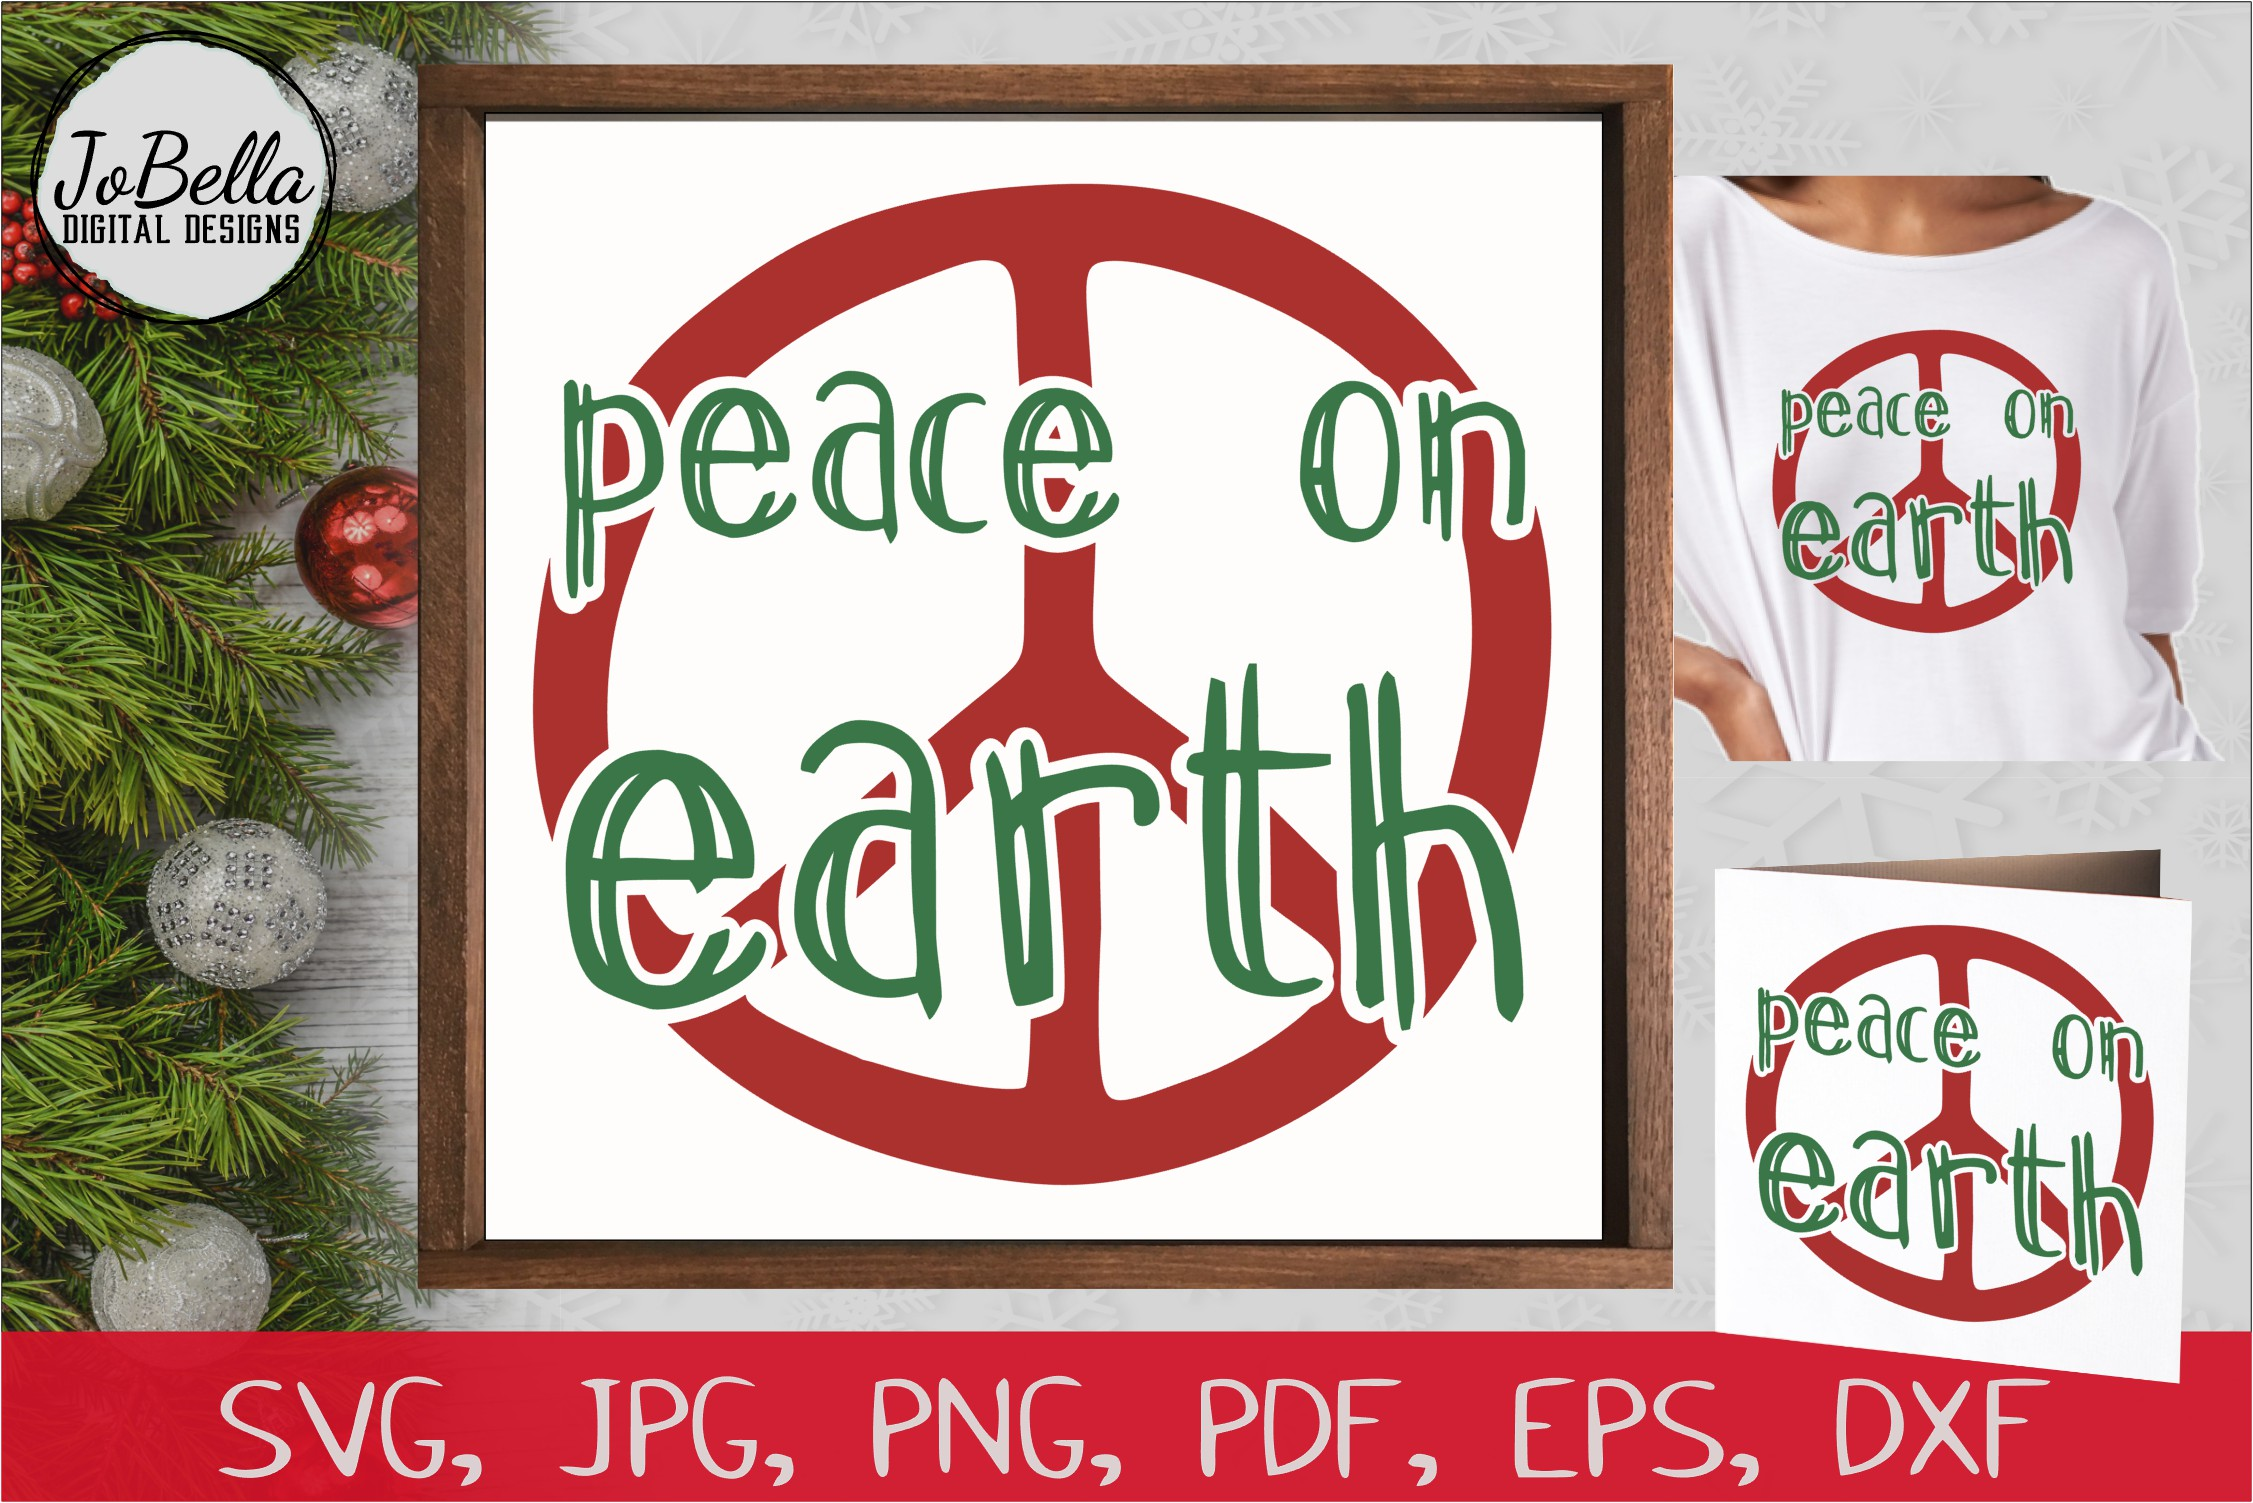 Download Free Peace On Earth Christmas Svg Graphic By Jobella Digital Designs for Cricut Explore, Silhouette and other cutting machines.